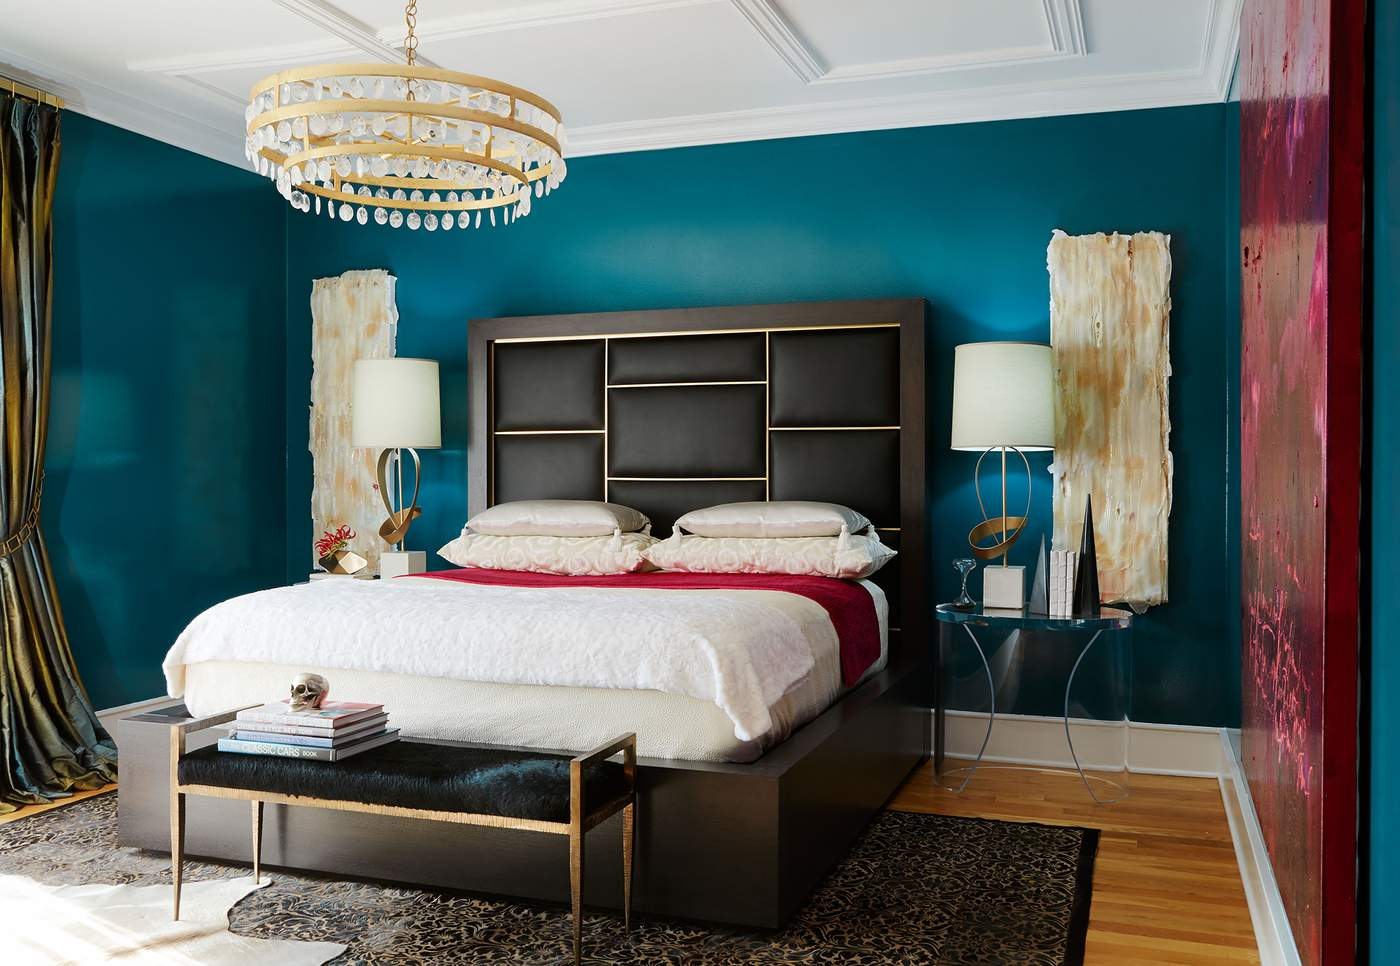 Bedroom Designs Latest 2018 The Top 8 Home Design Trends In 2018 Mansion Global